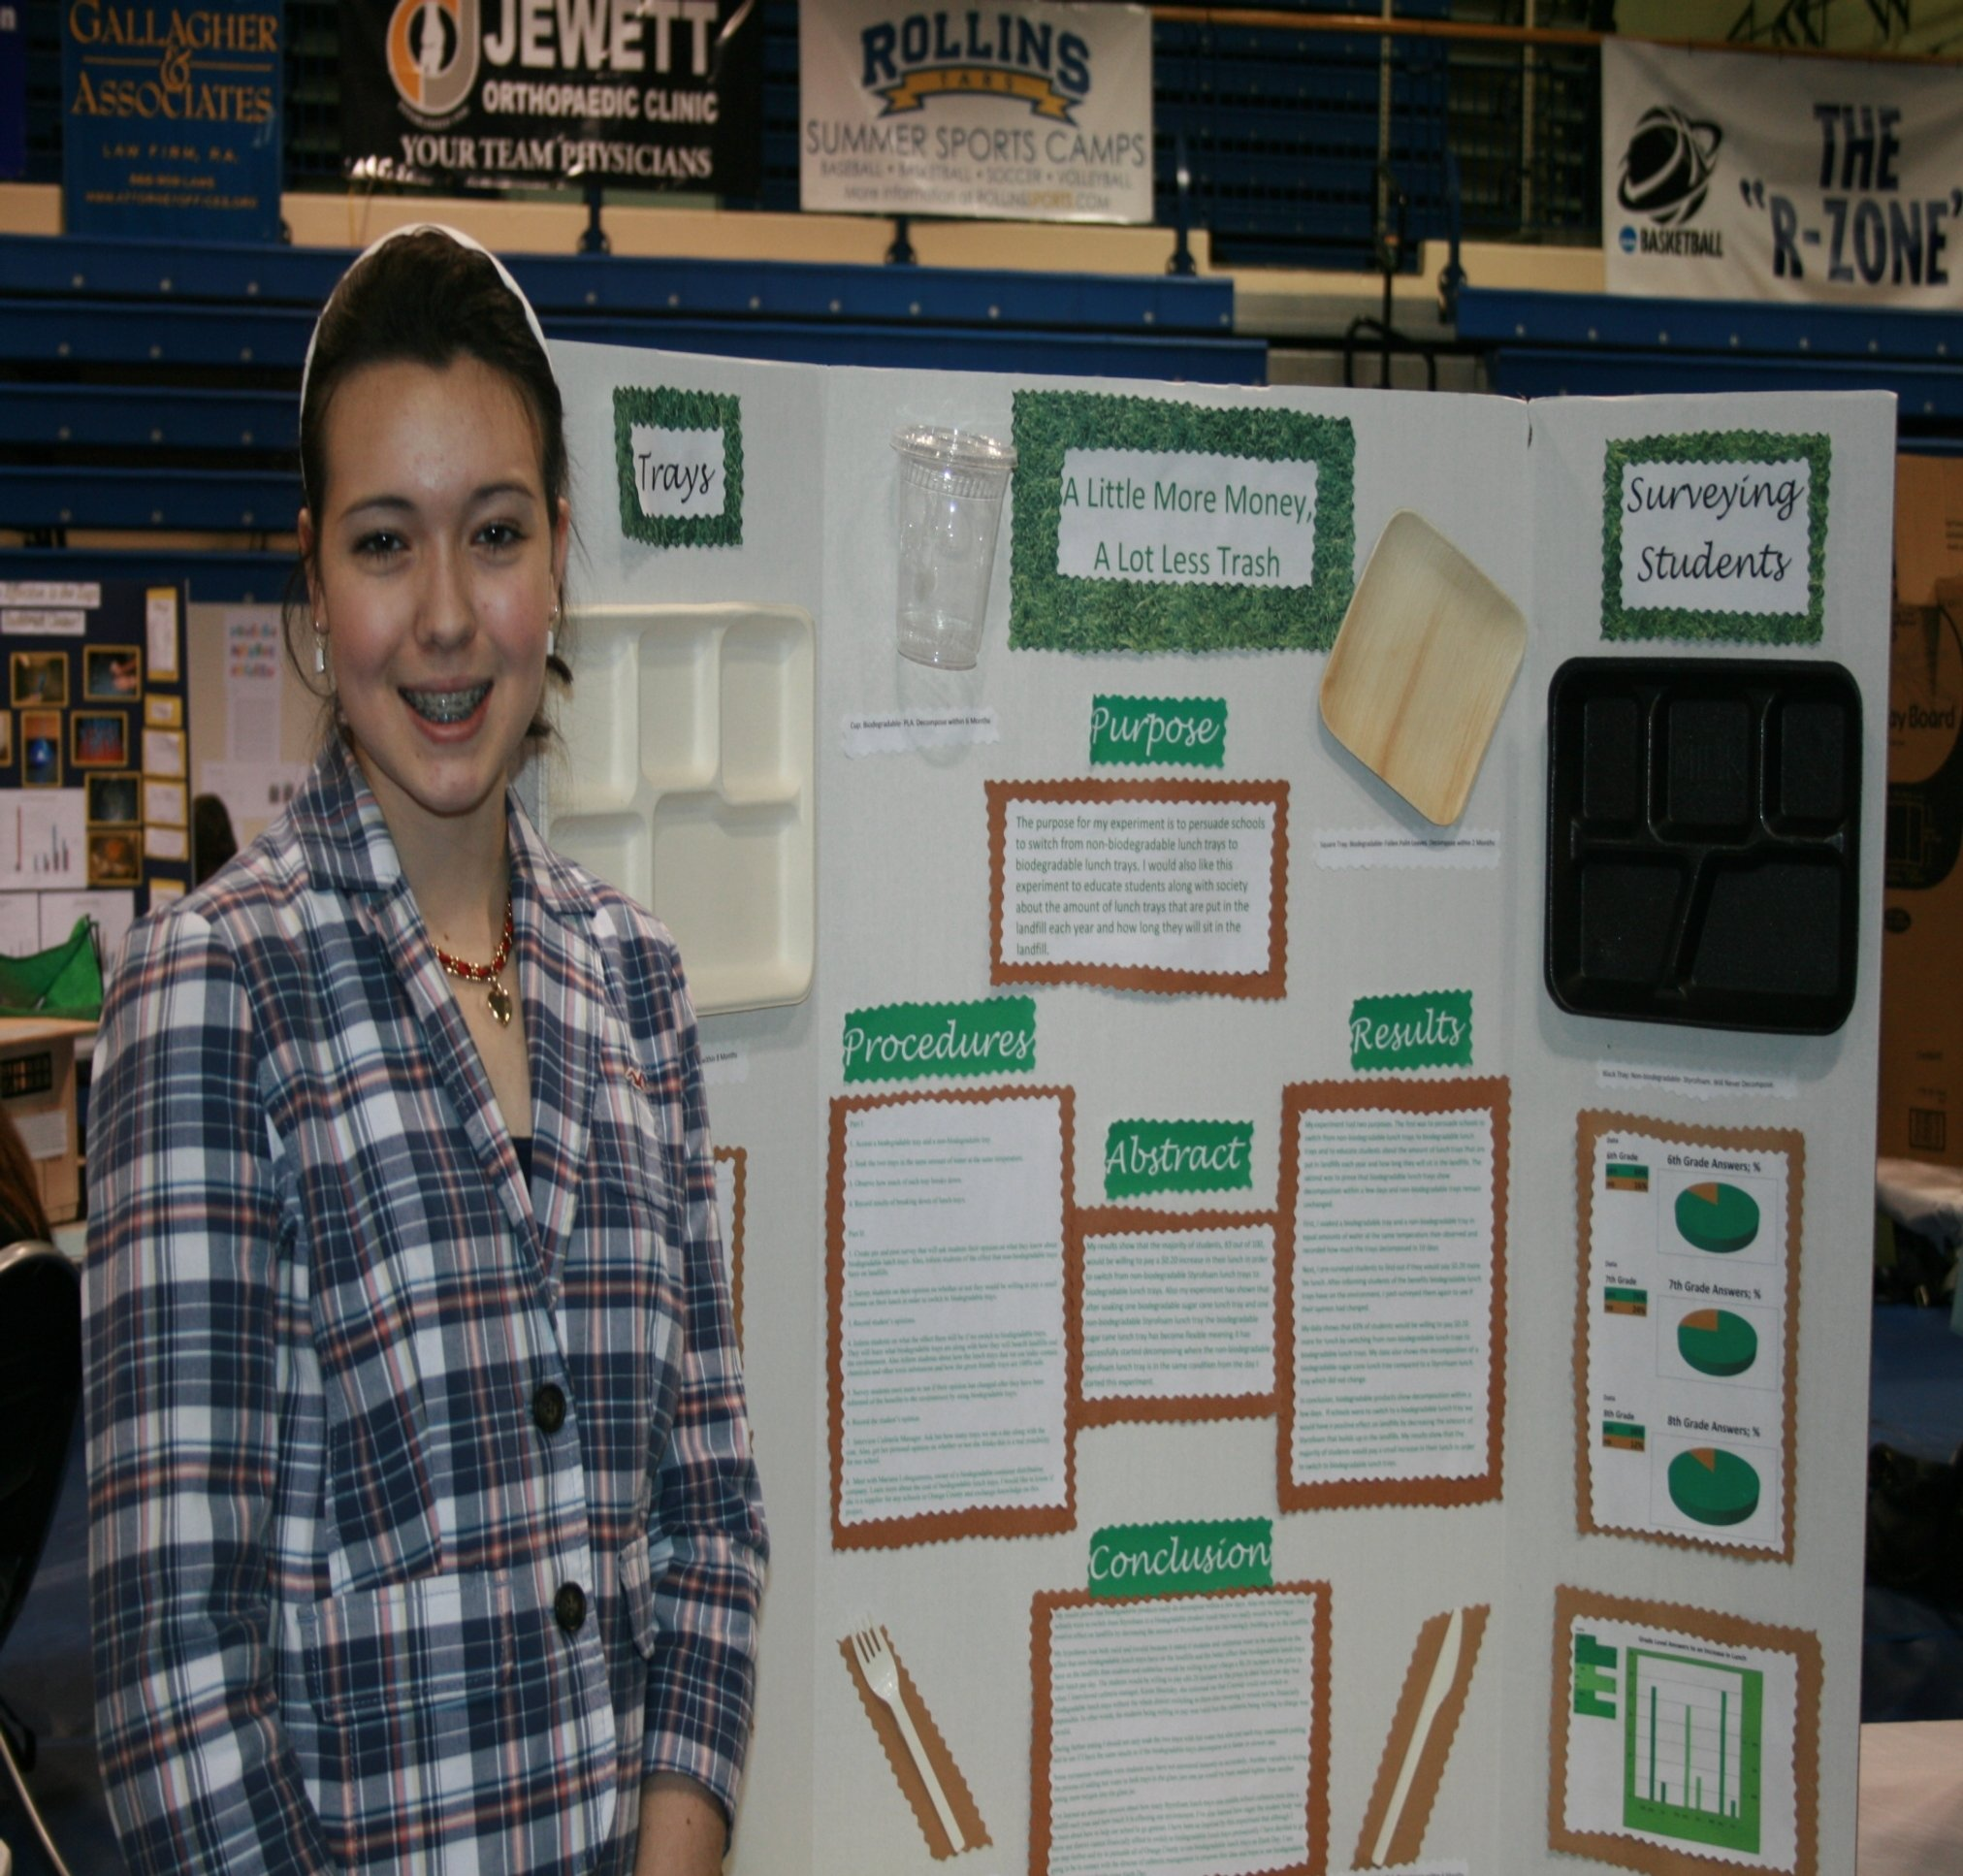 10 Ideal Science Fair Projects Ideas For 8Th Grade 8th grade science project ideas list homeshealth 30 2020